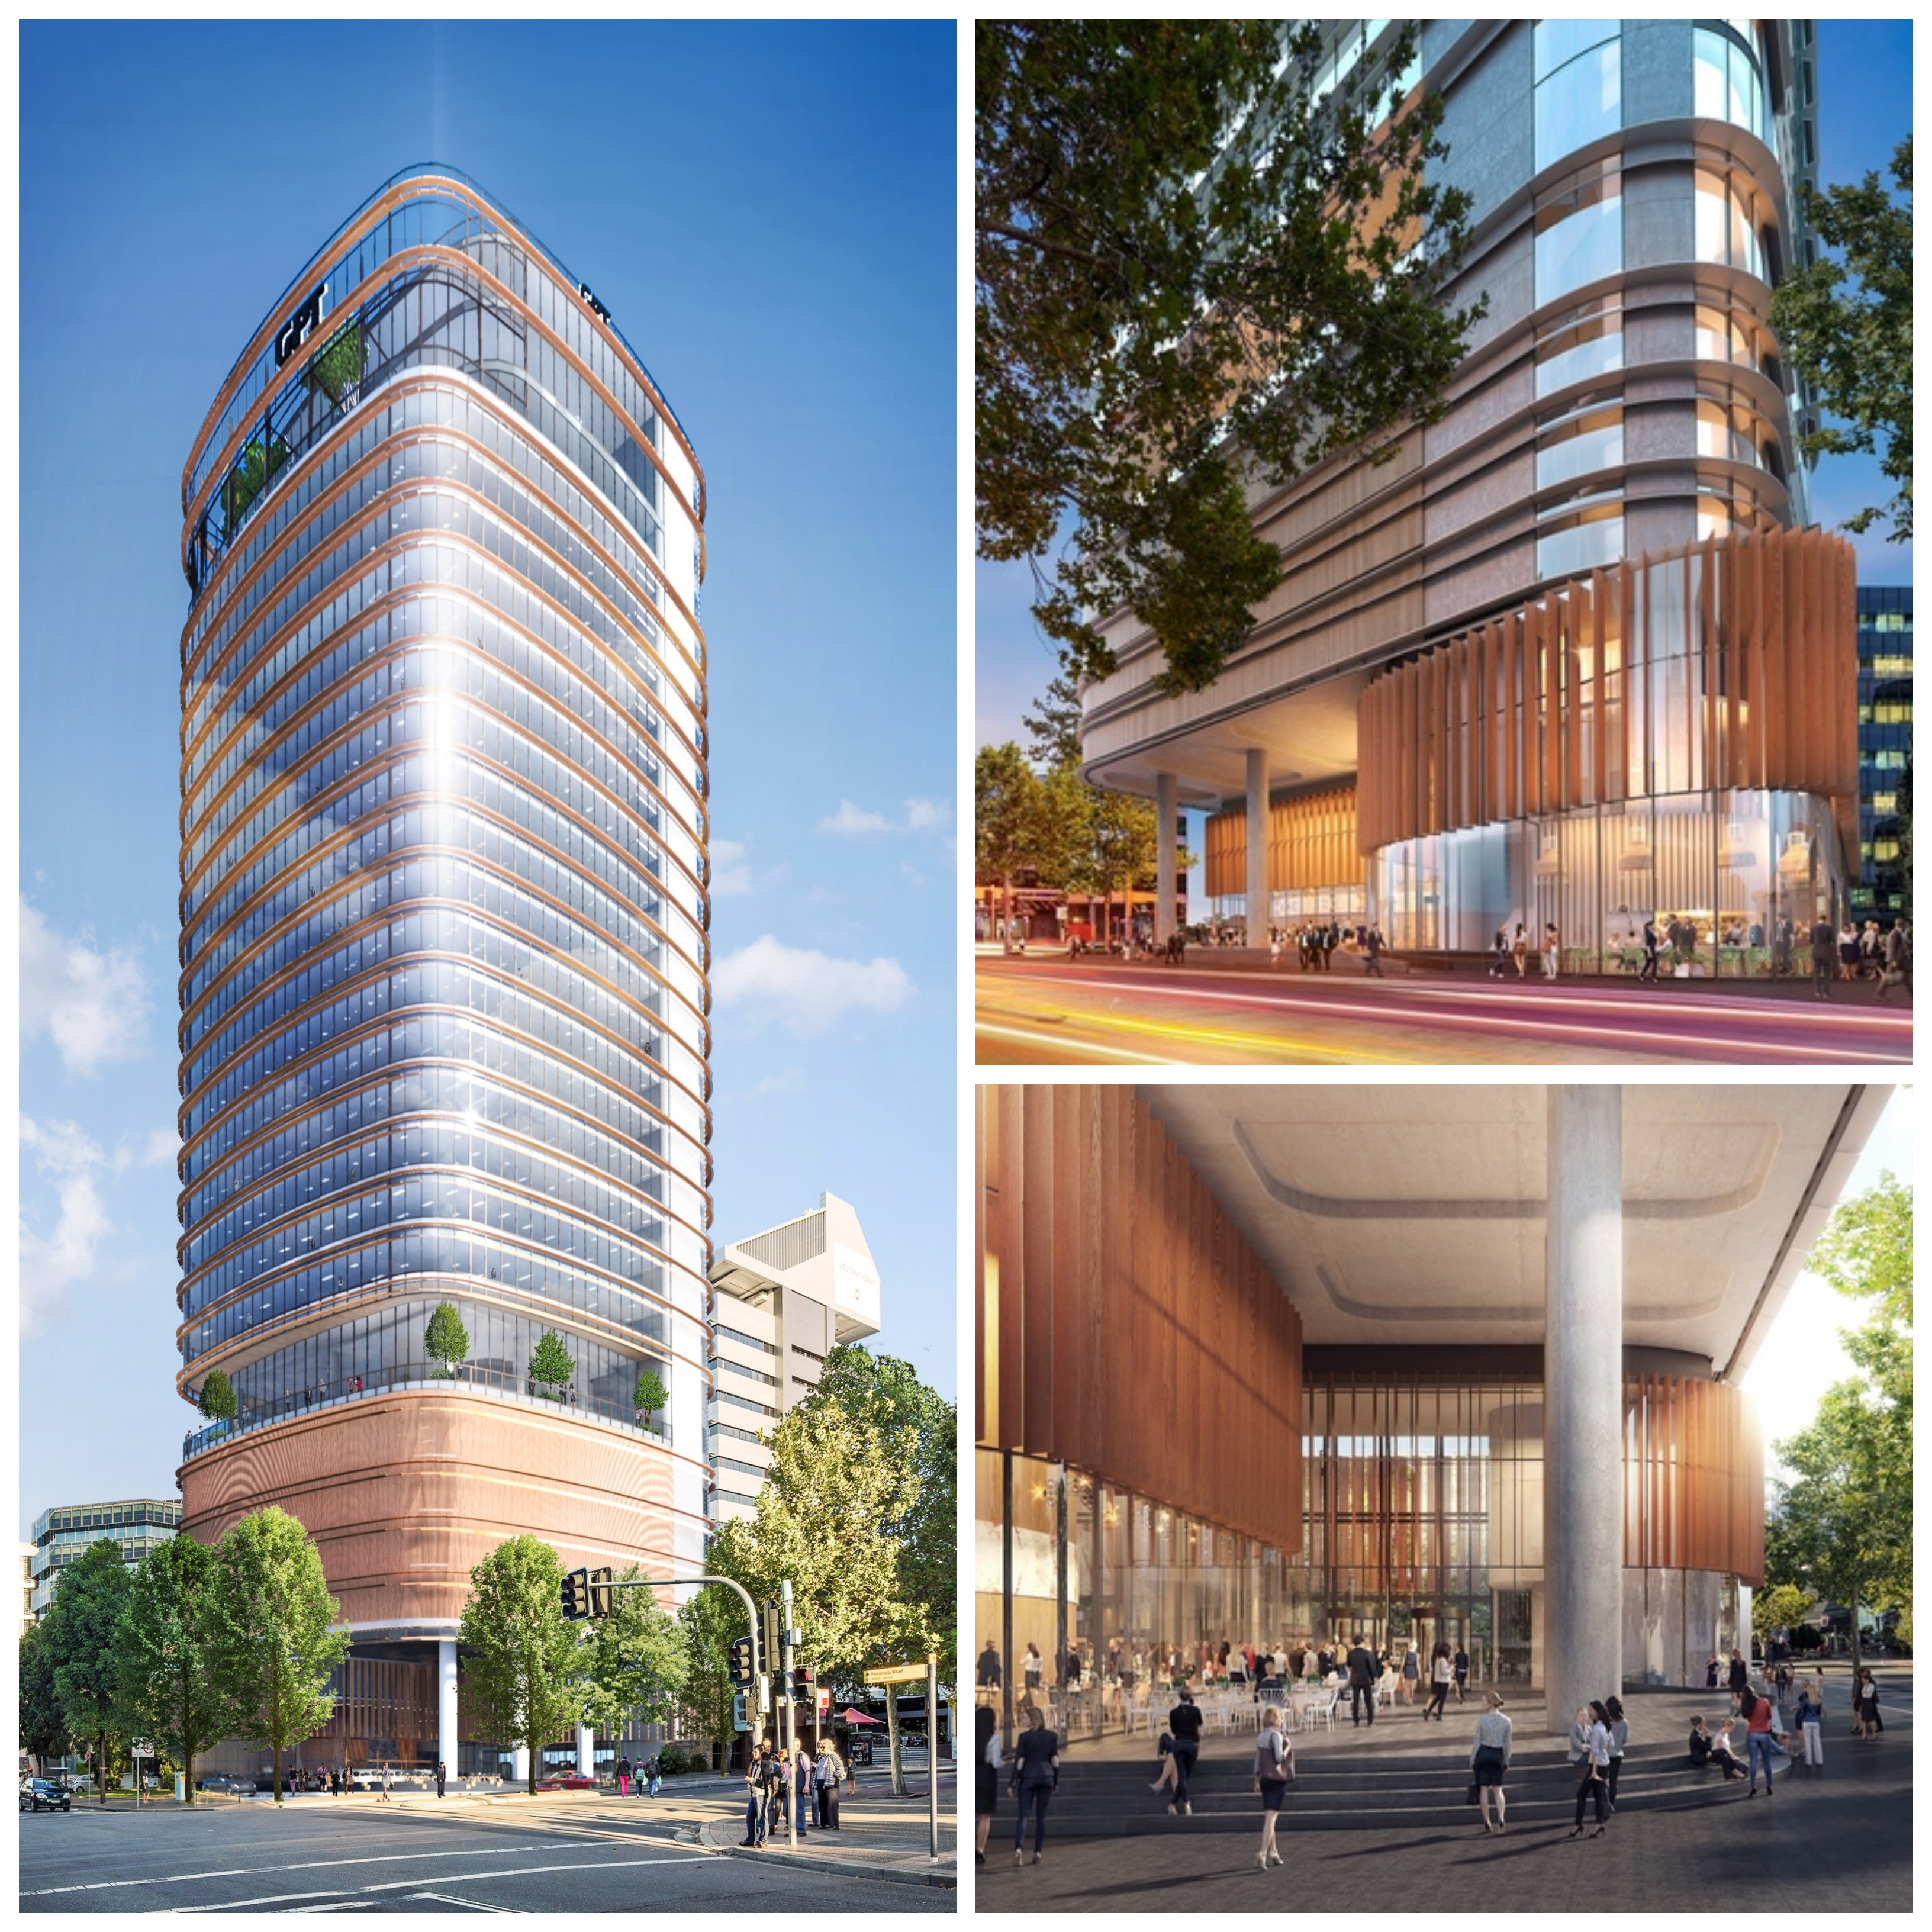 Designed by Fender Katsalidis, 32 Smith Street will feature a ground level 'urban room' event space and an elevated podium terrace.